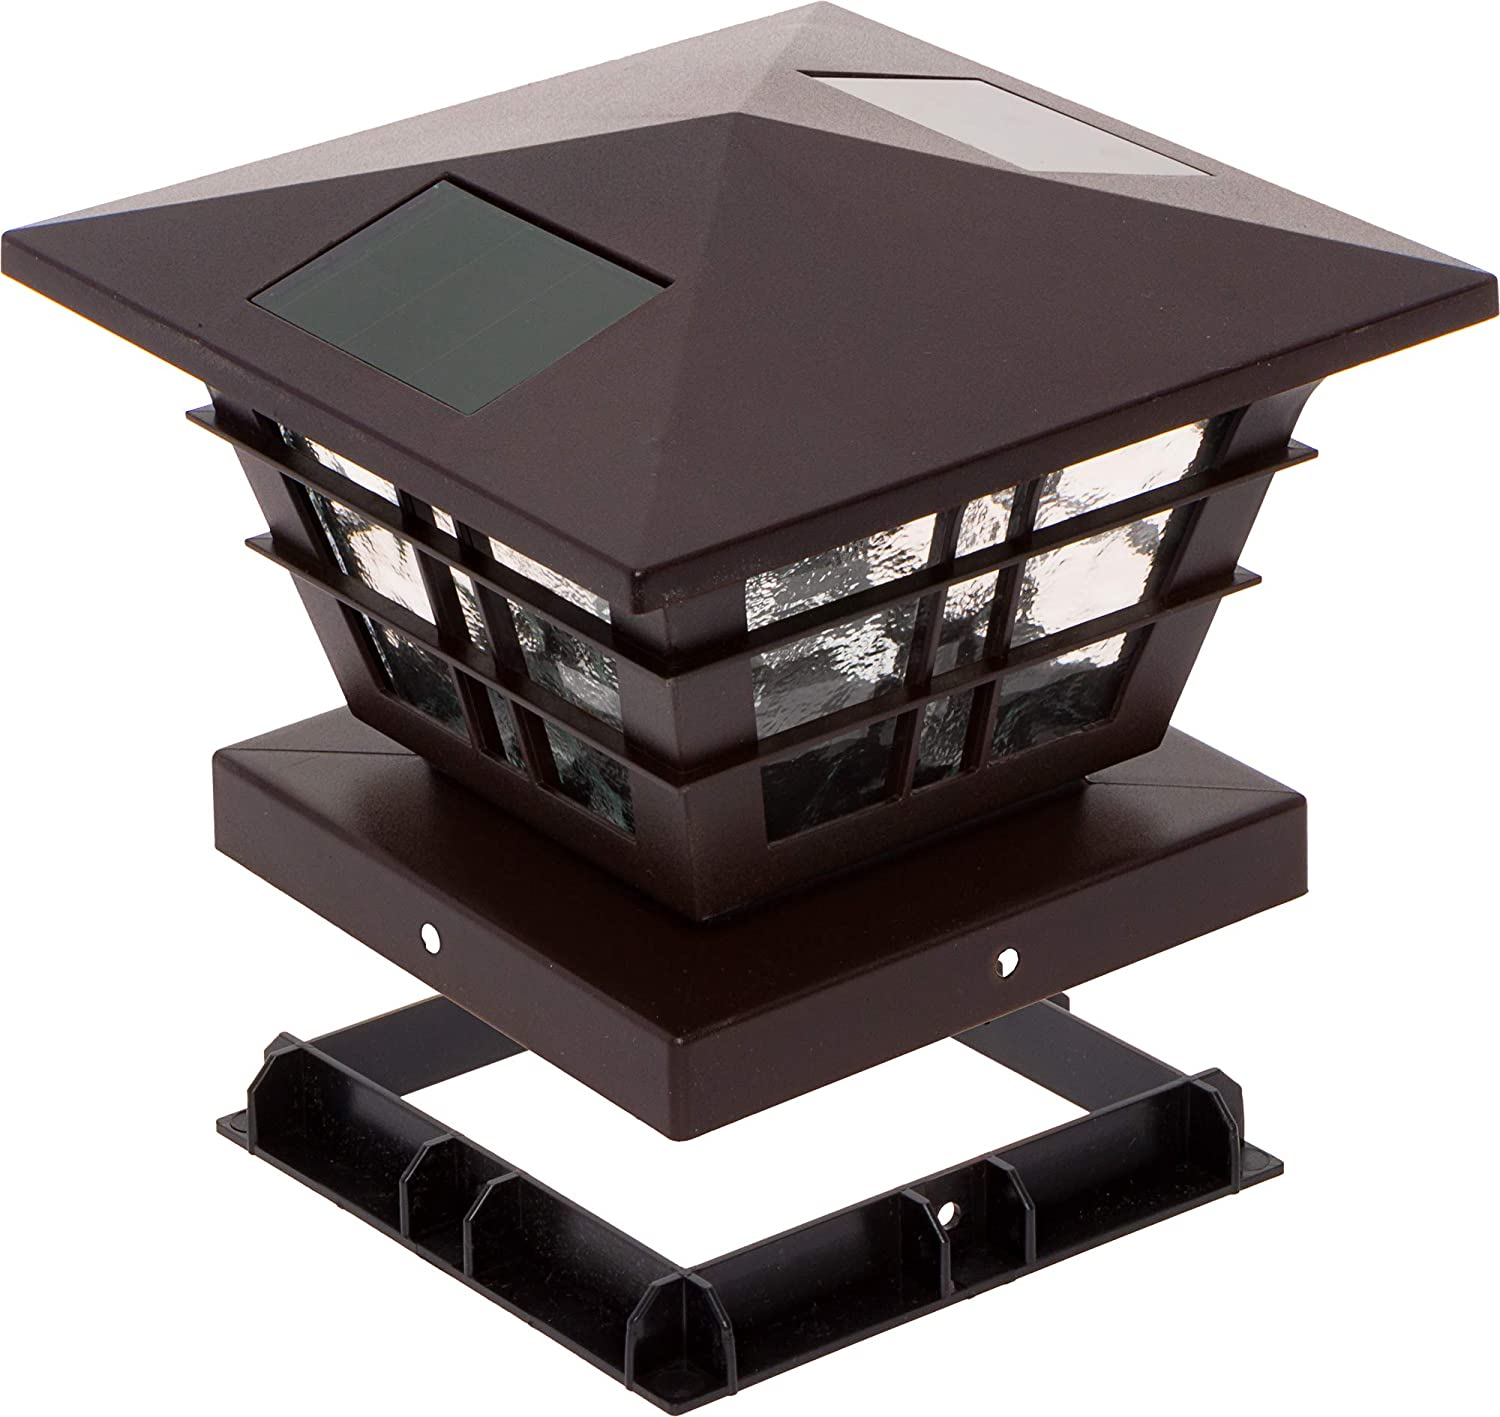 Fits 5 inch and 4 inch PVC Posts GreenLighting White Cape Cod 5x5 Solar Powered Post Cap Light with 4x4 Base Adapter